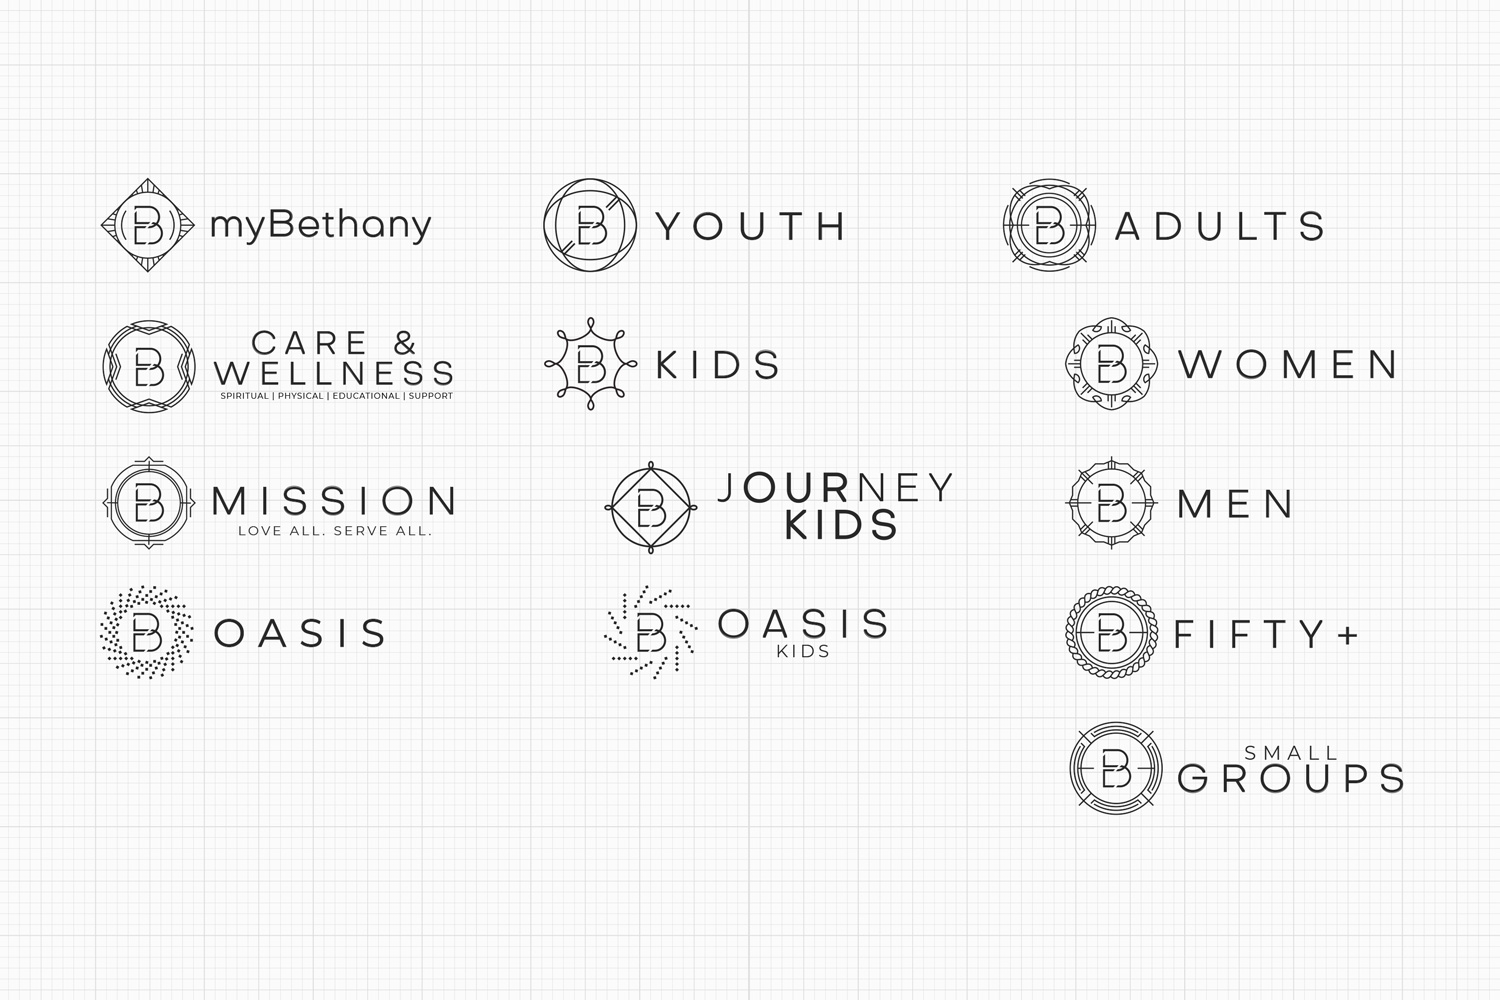 church branding strategy for church logo and ministry sub-brands